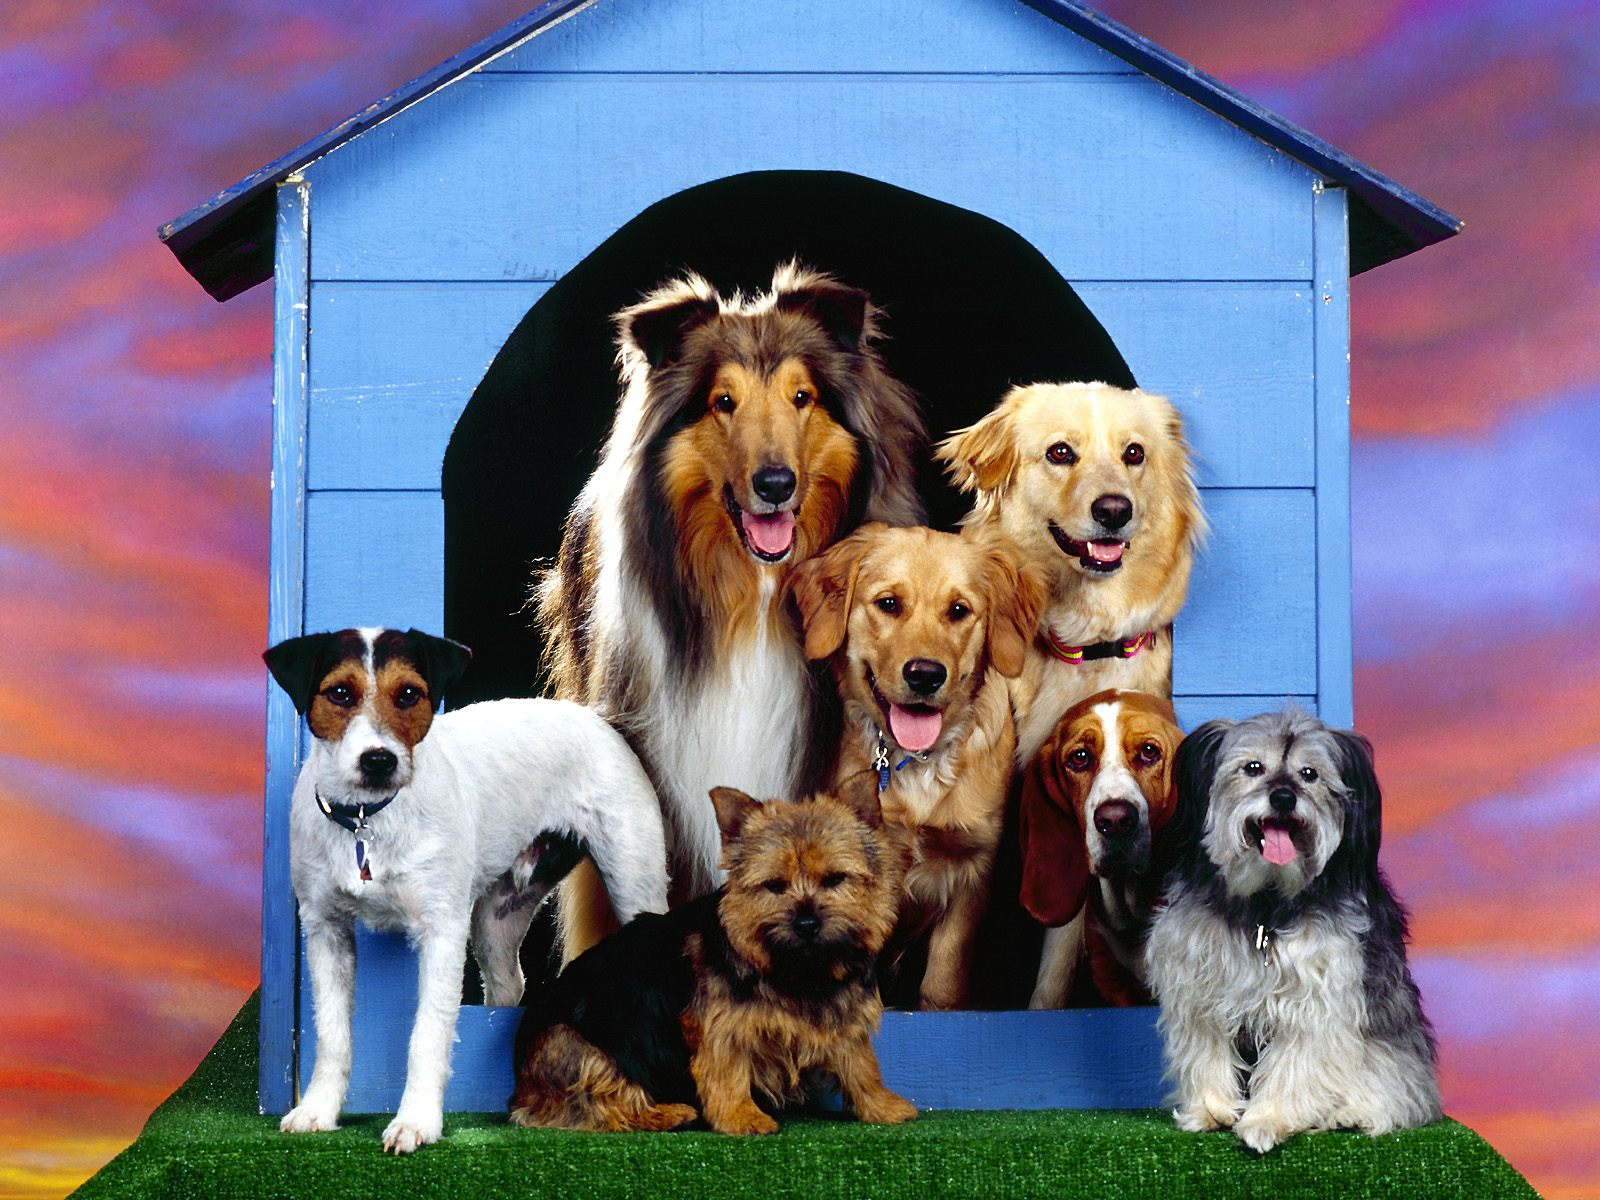 Dogs Family at Home Wallpapers Backgrounds | Dogs Wallpapers Backgrounds